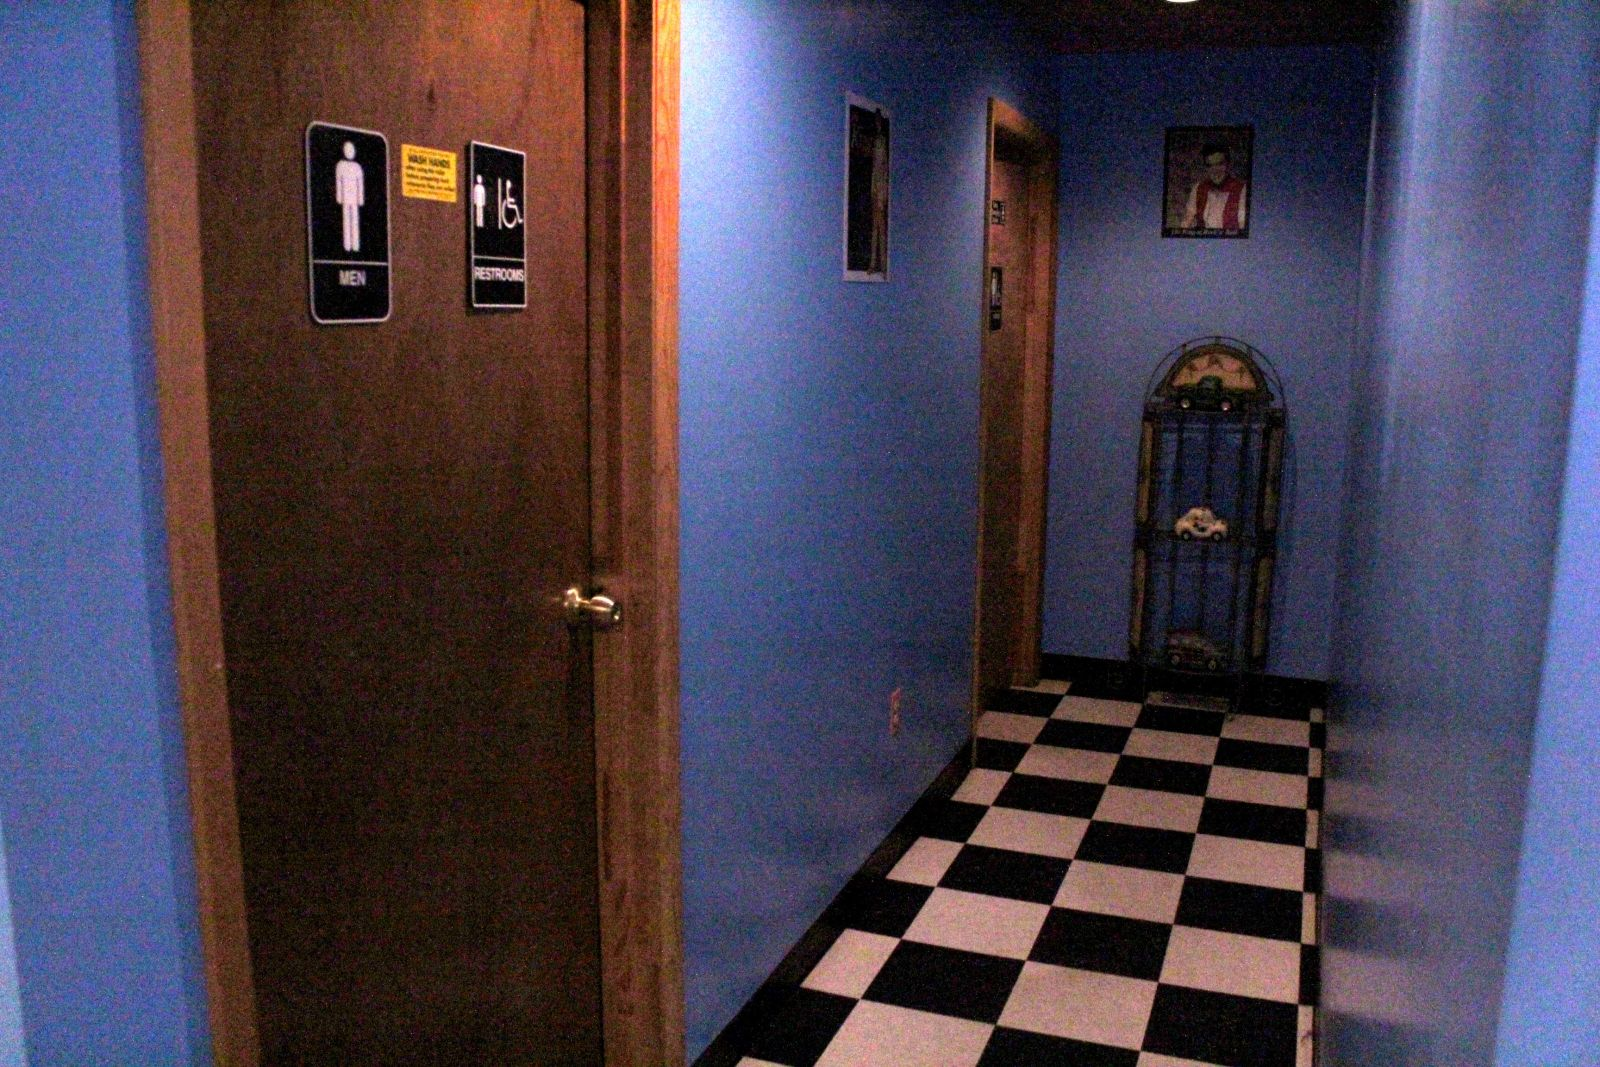 Two young men in 1920's attire have been seen in this hallway.